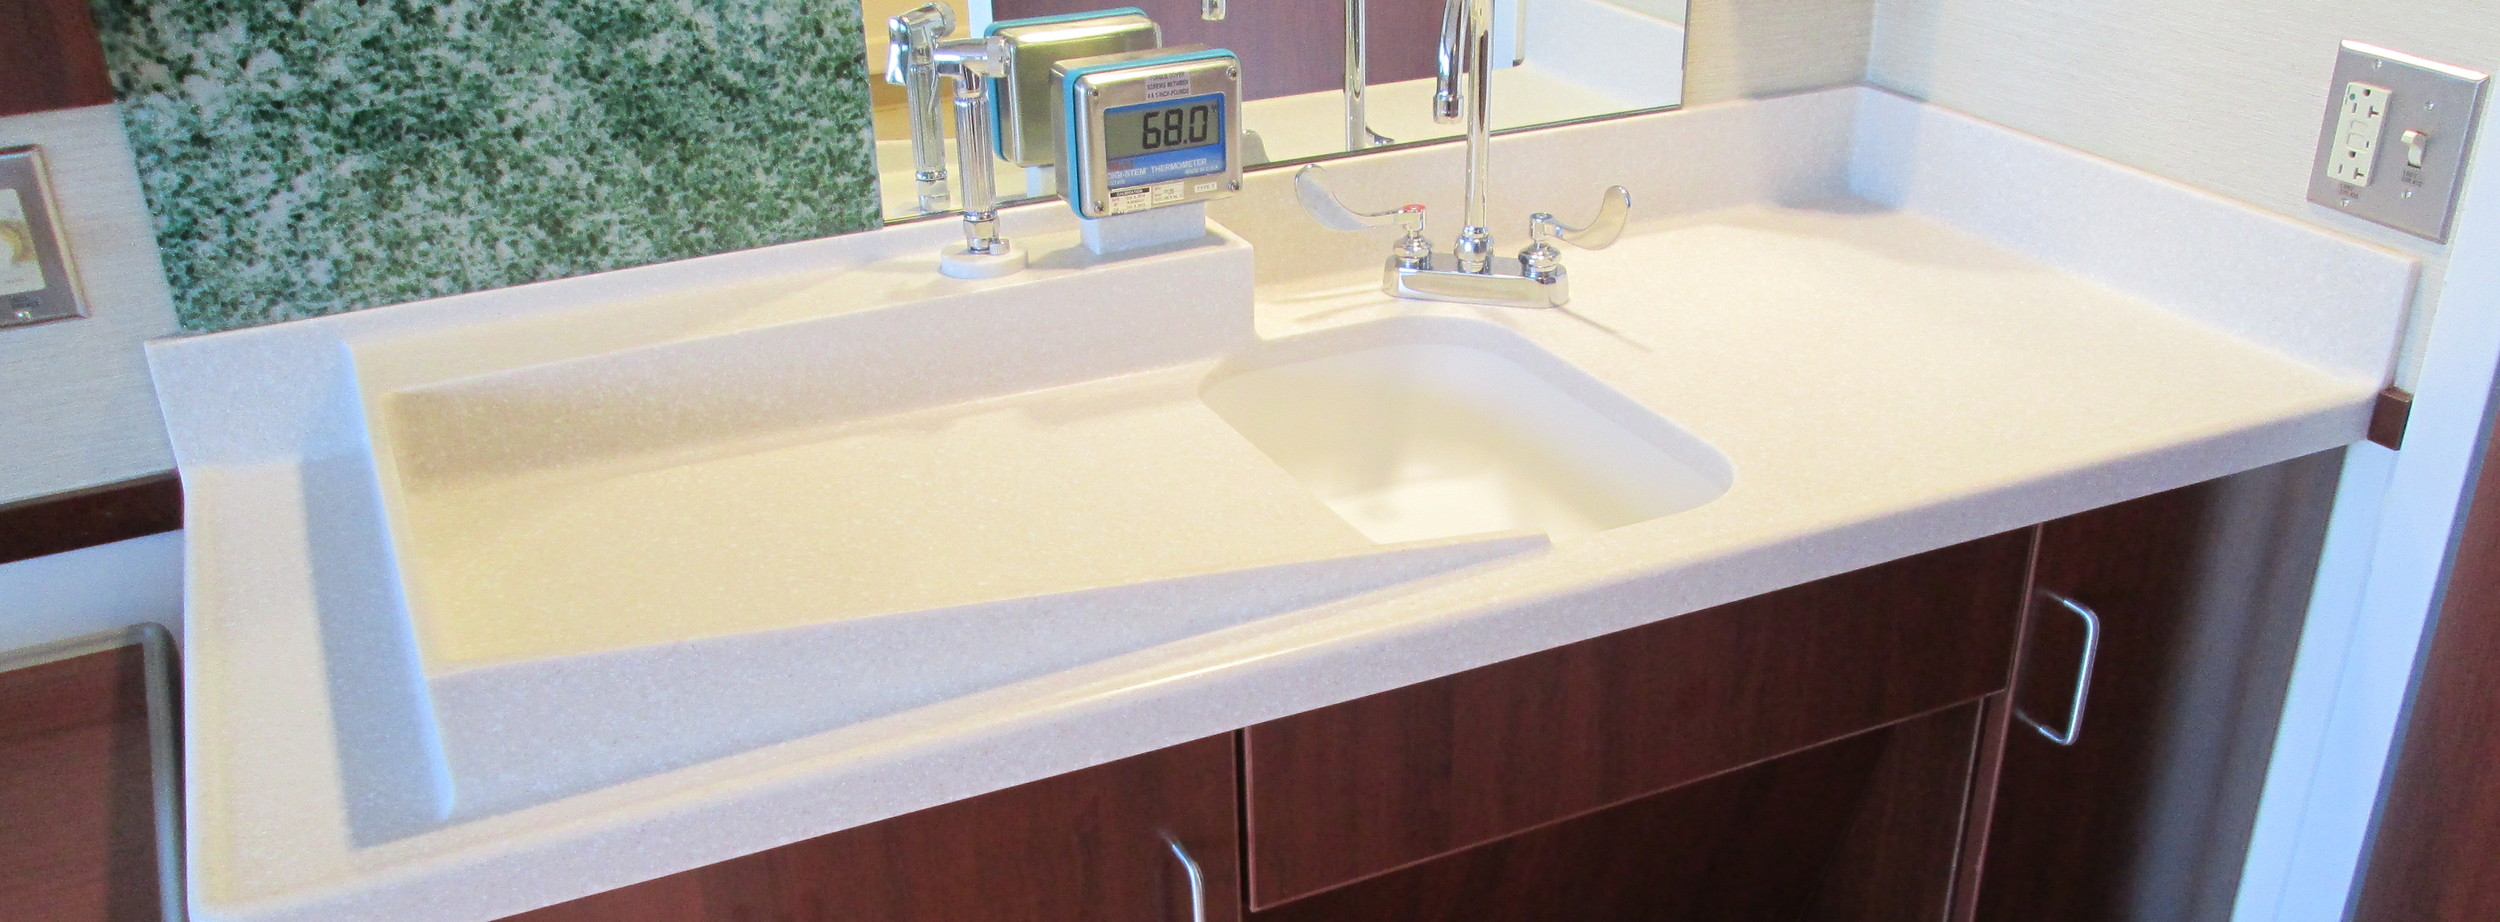 Custom_Corian_Baby_Hospital_Counter_Sterling_Surfaces_3.JPG